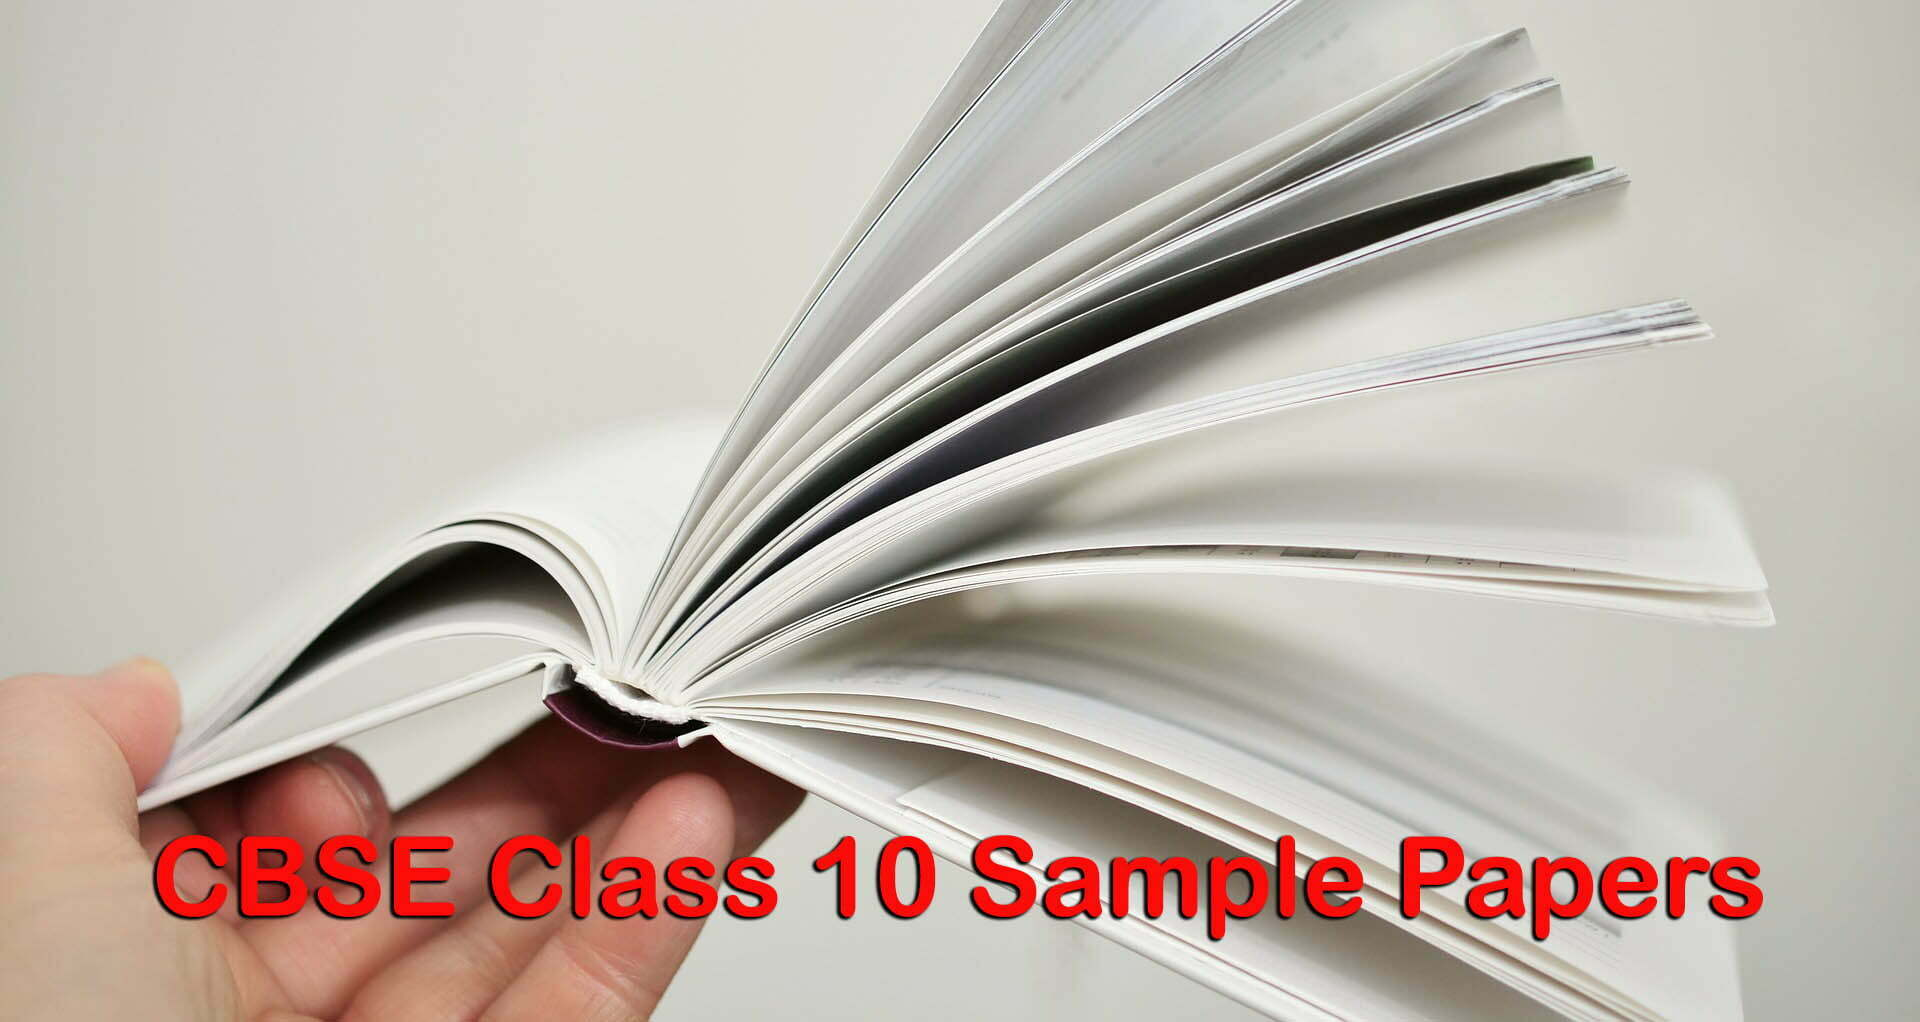 CBSE Class 10 Sample Papers